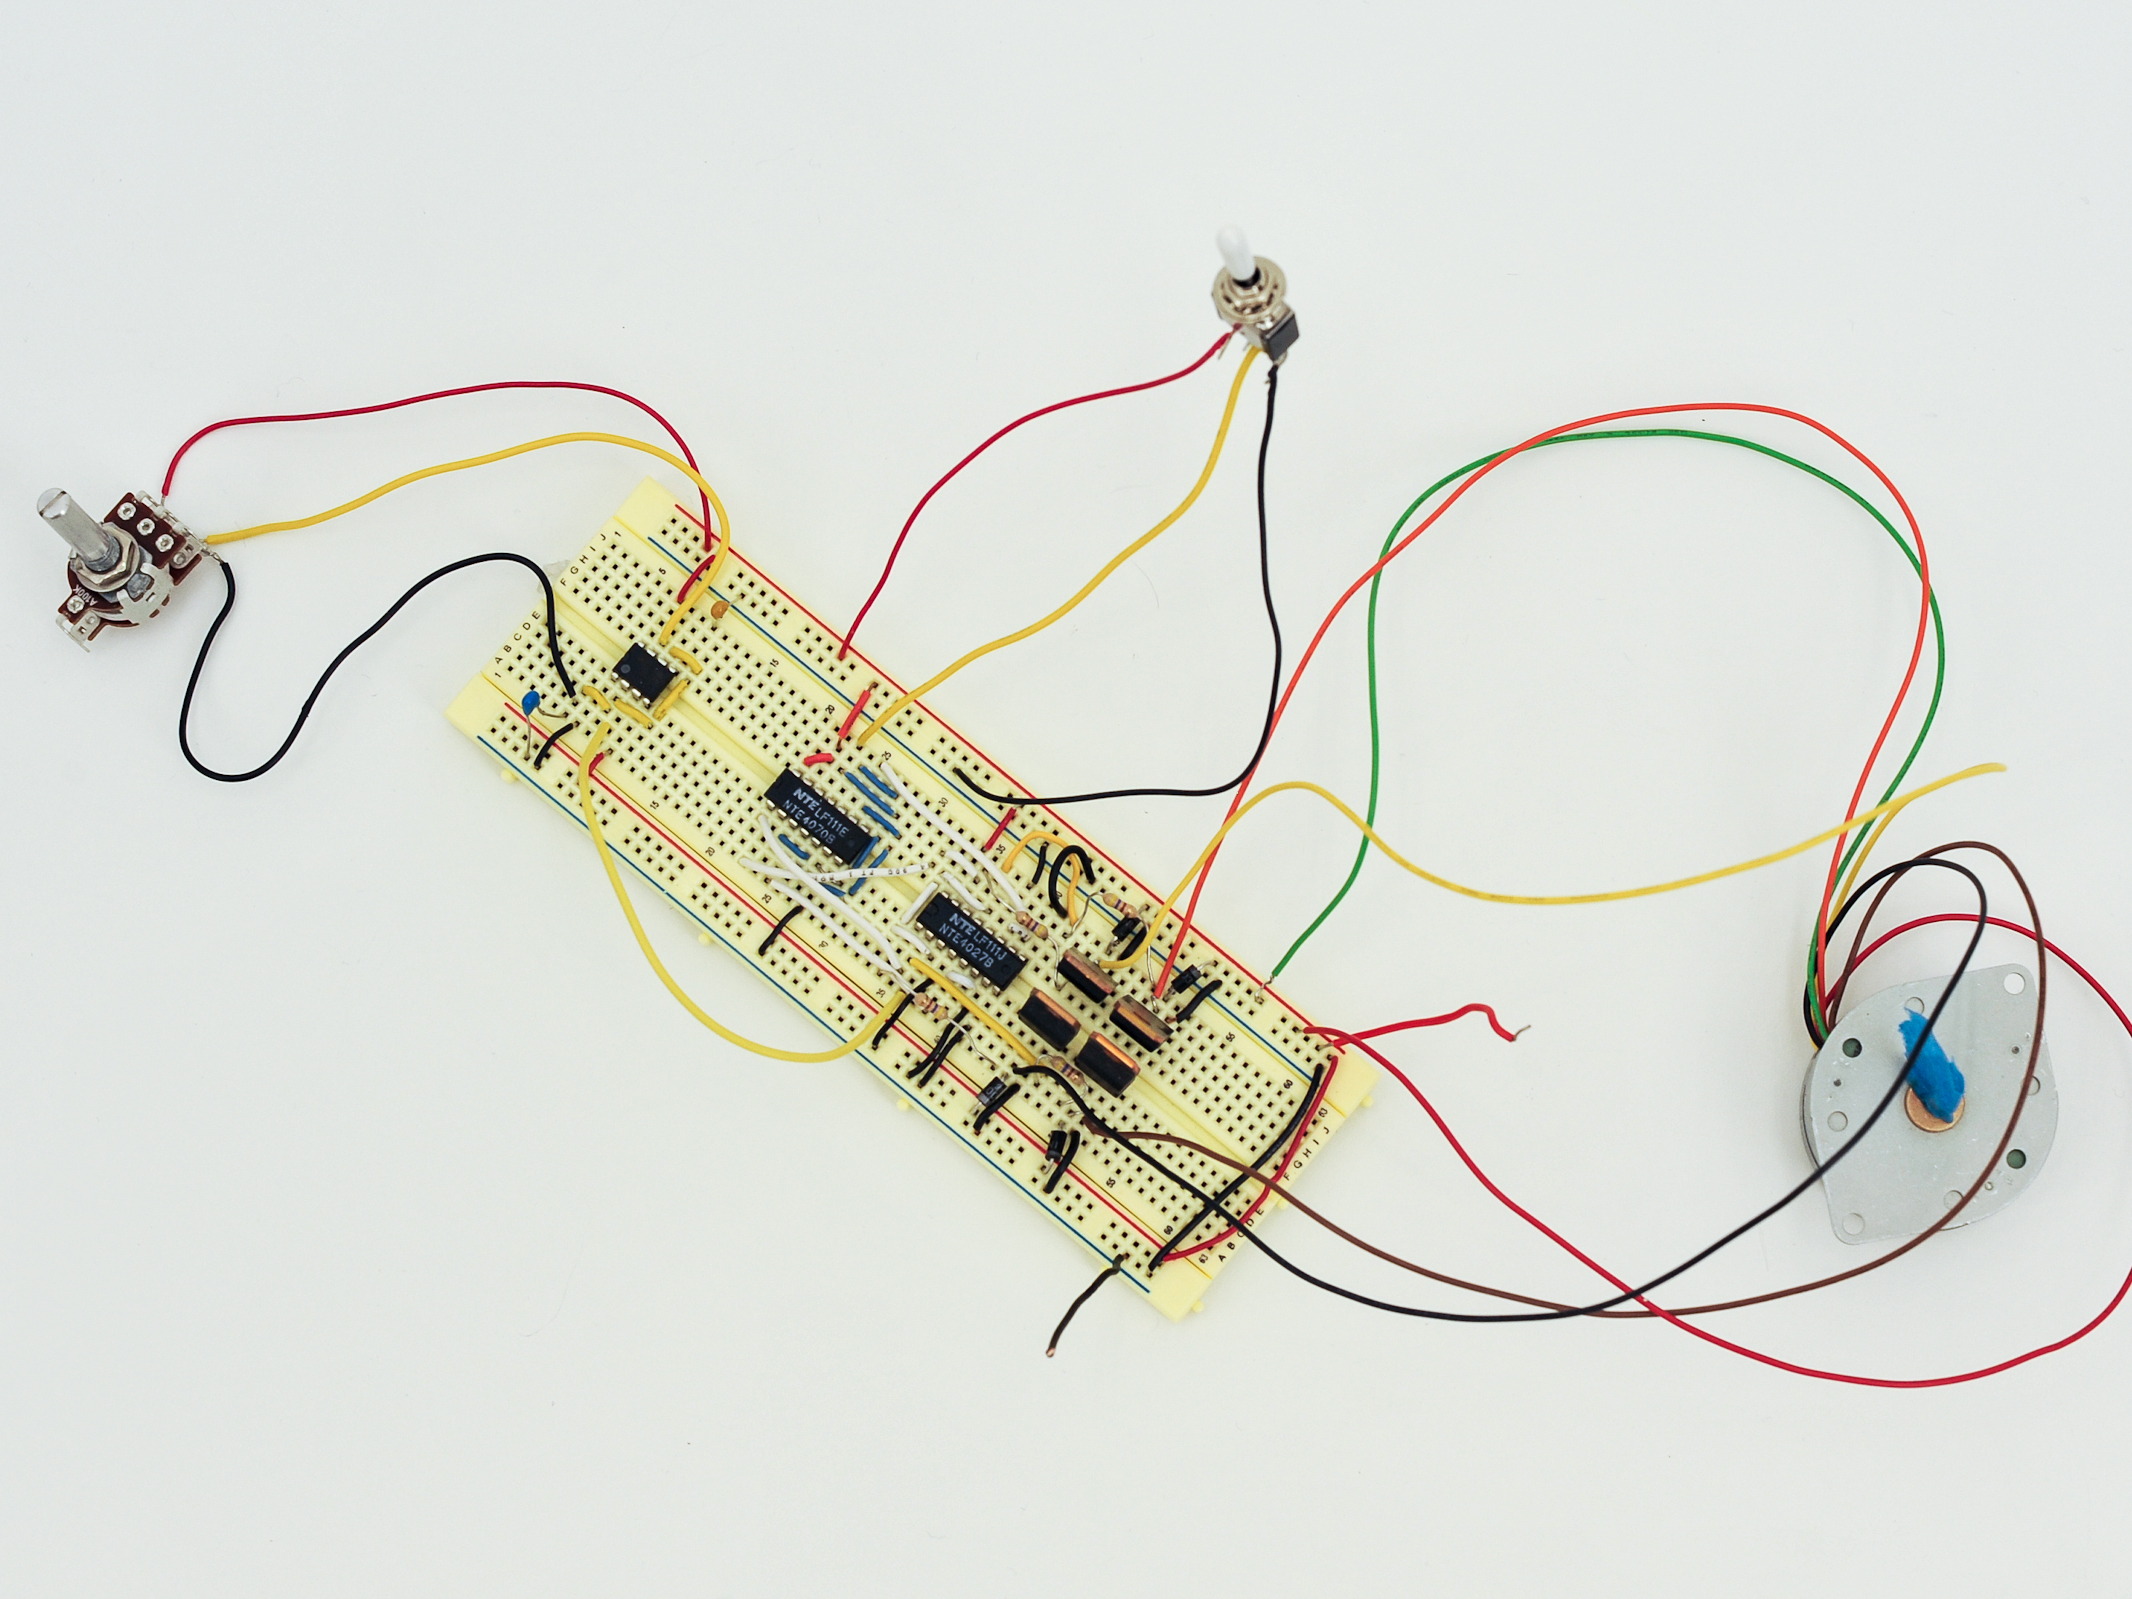 Projects in Motion: Control Three Types of Motors with 555Timers